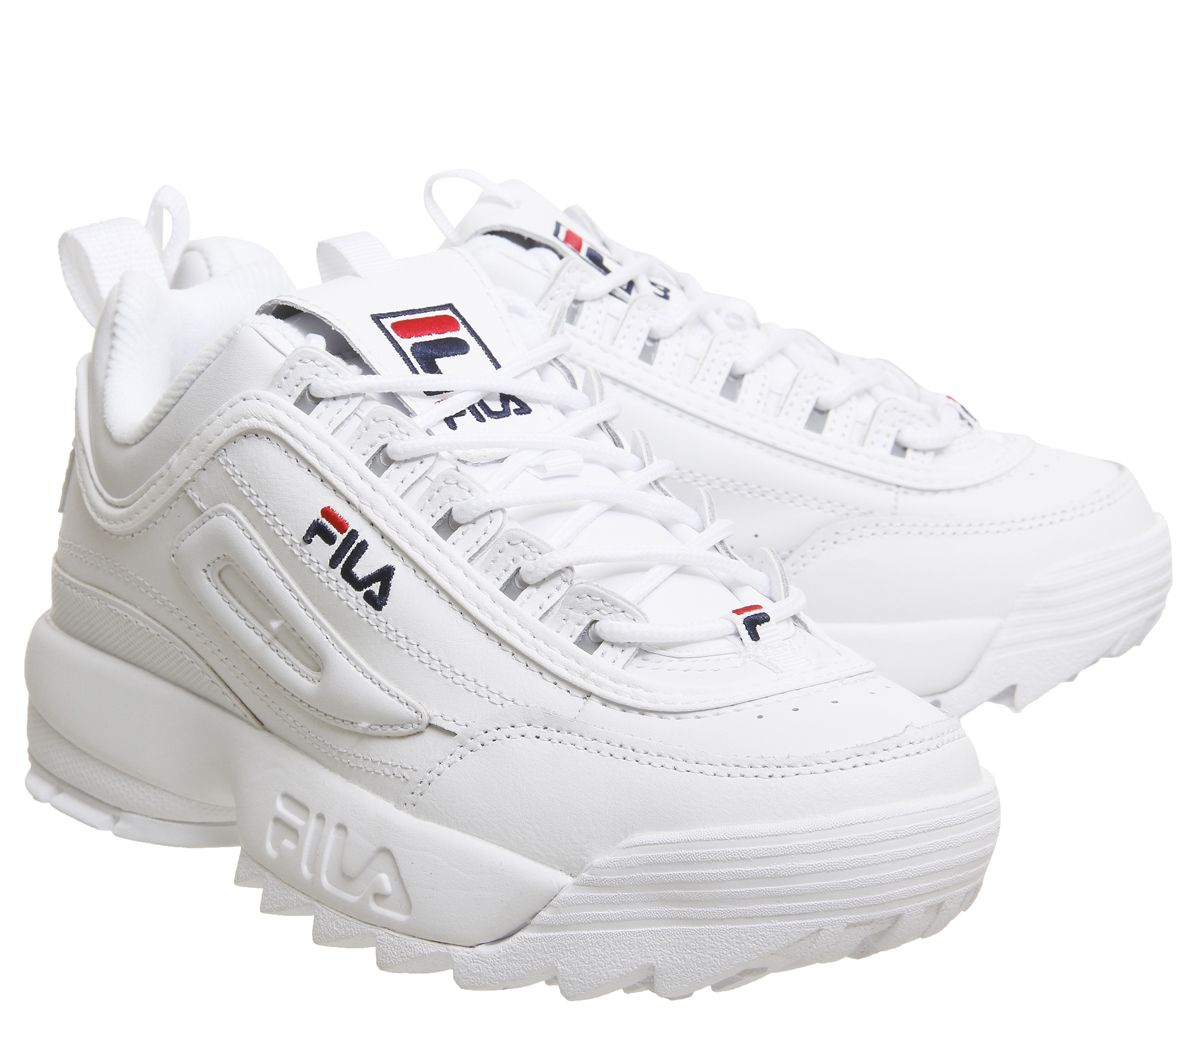 Details about Womens Fila Disruptor Ii Trainers White Leather Trainers Shoes